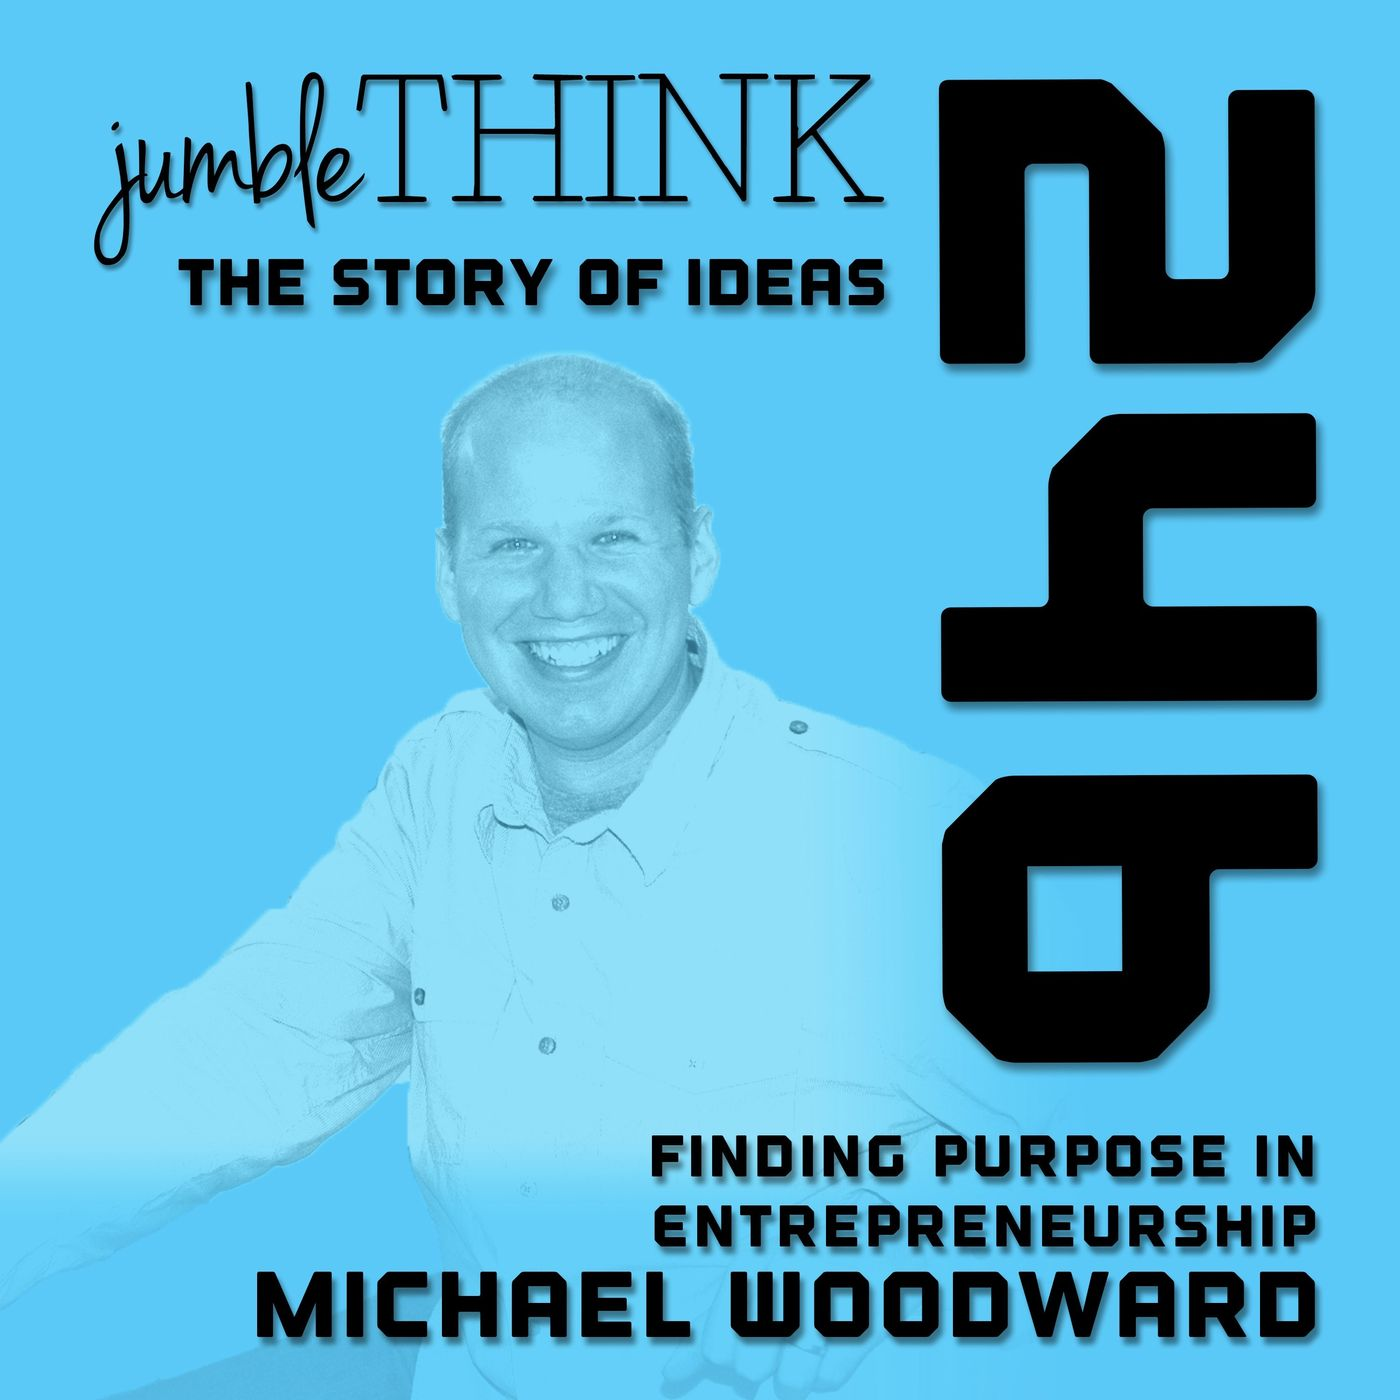 Finding Purpose in Entrepreneurship with Michael Woodward